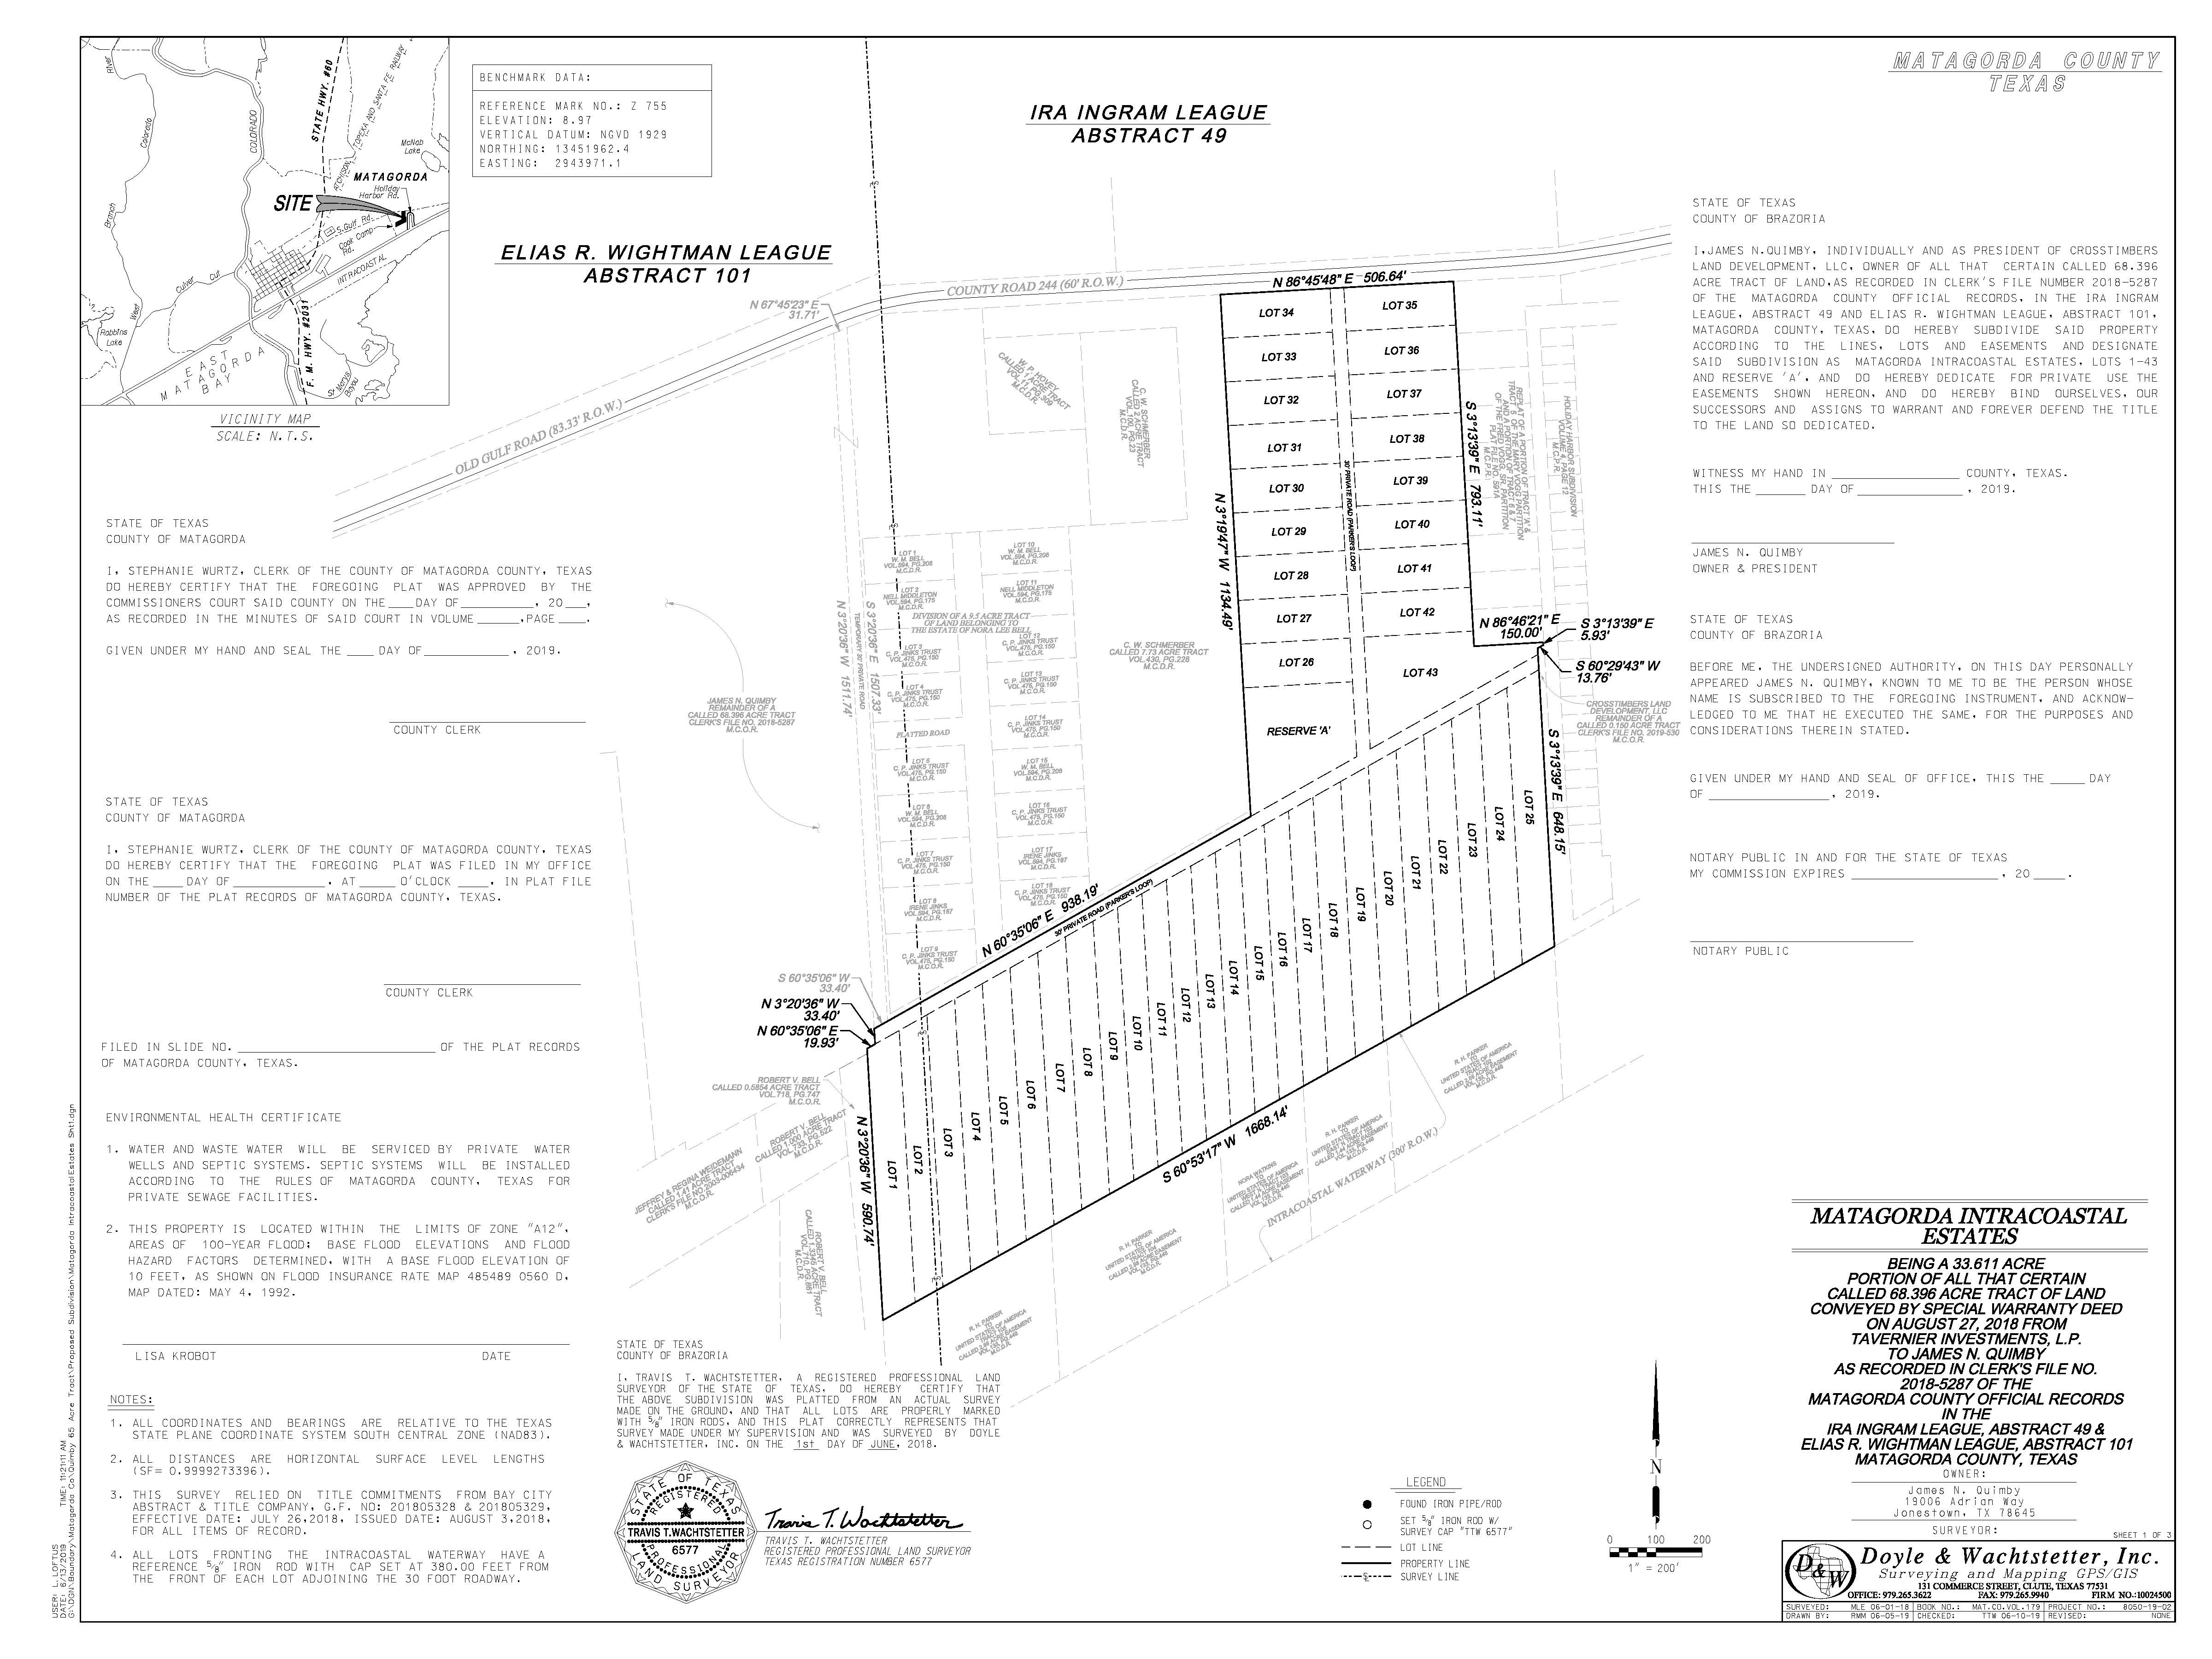 Crosstimbers Matagorda Land Development – Now available